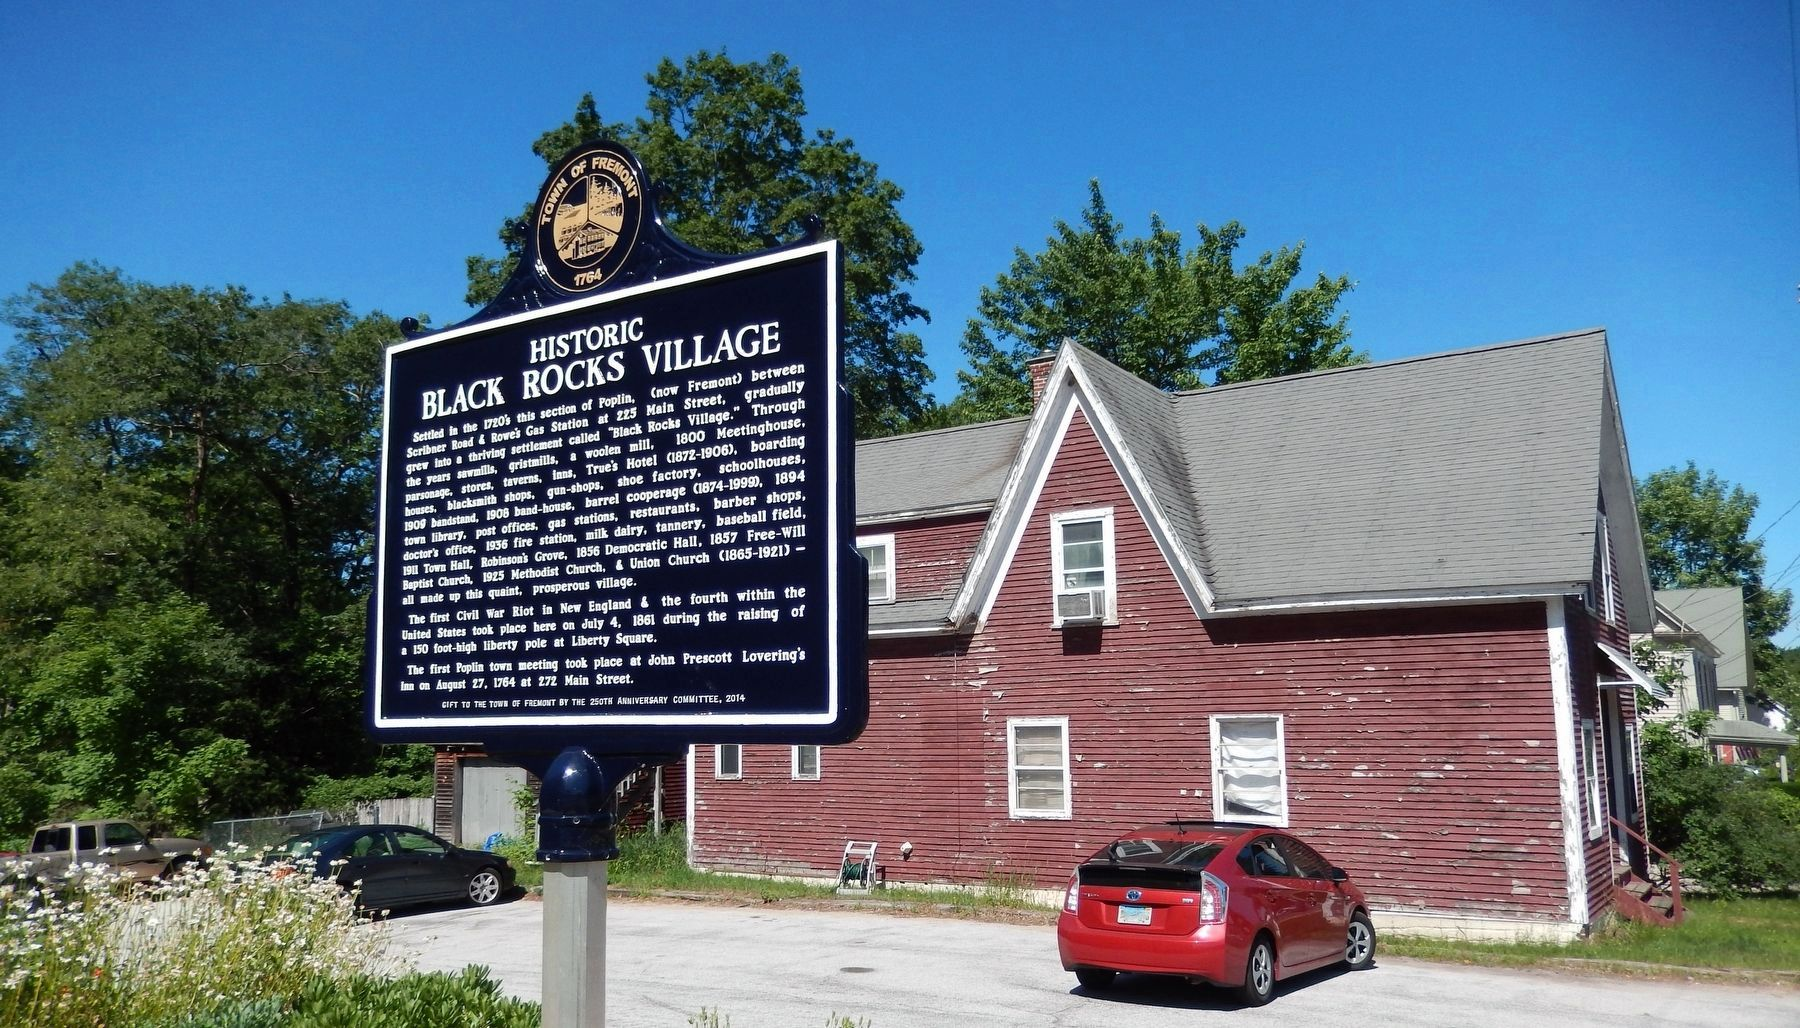 Historic Black Rocks Village (<i>marker side 1; wide view; Town Hall parking in background</i>) image. Click for full size.